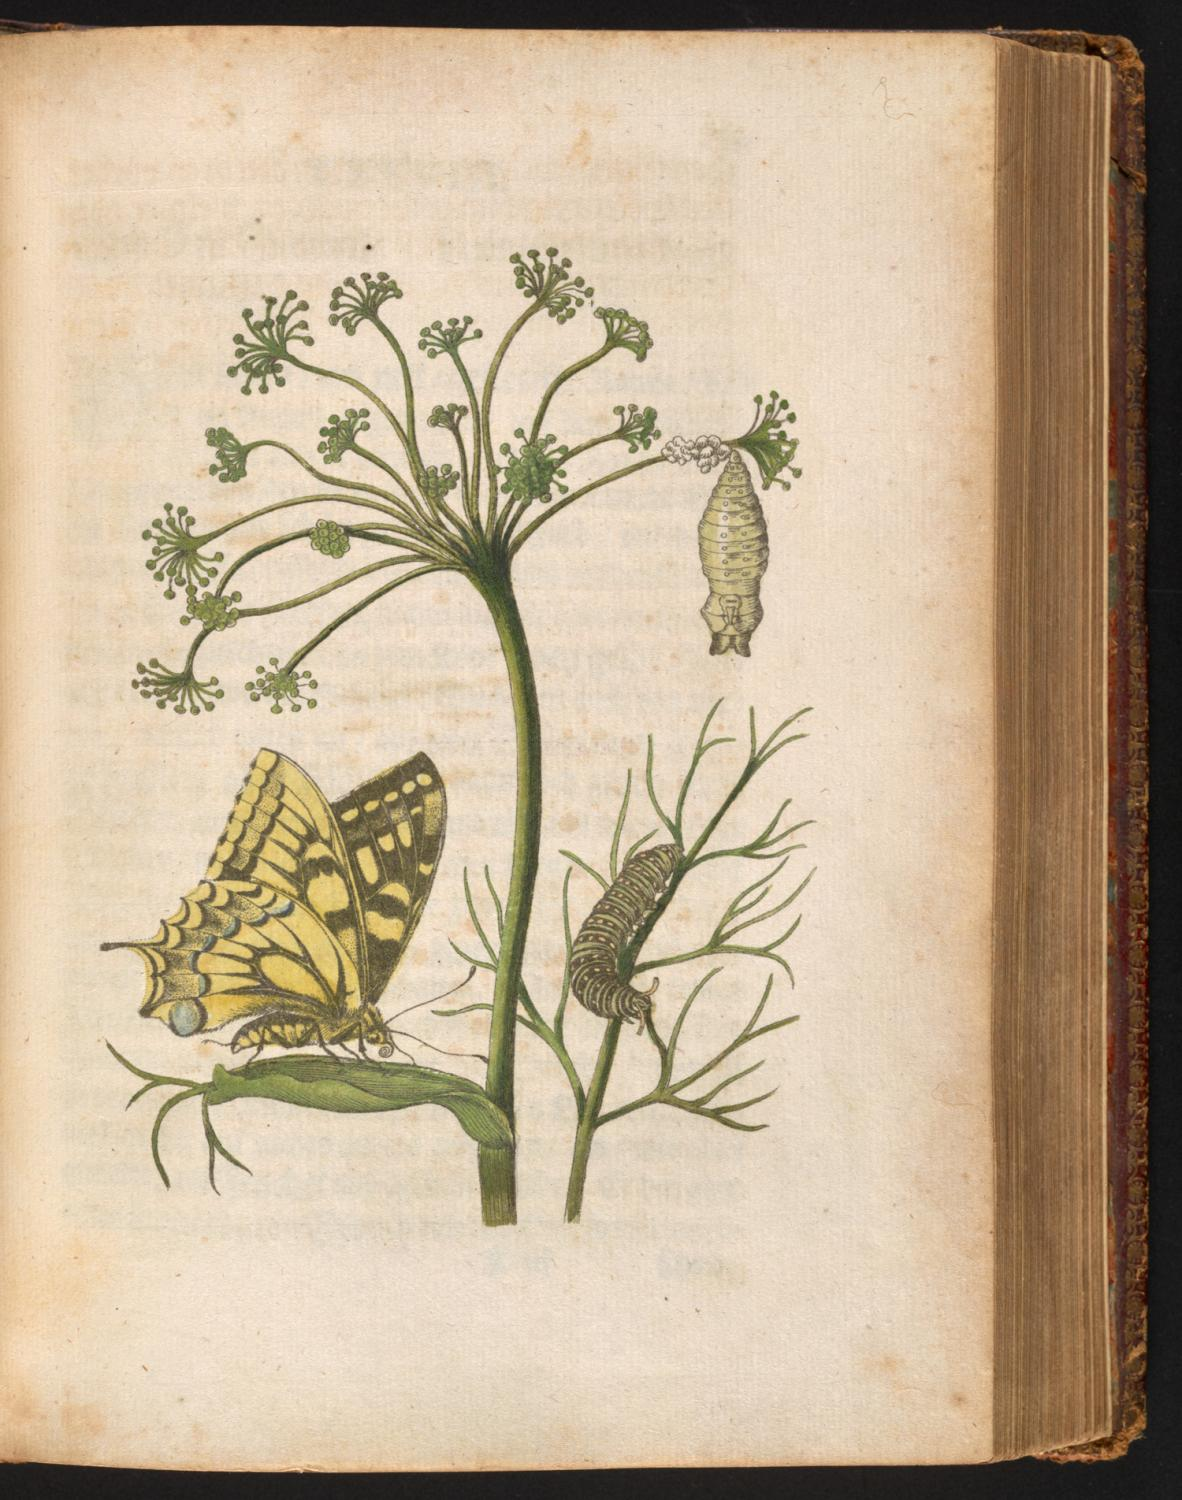 Maria Sibylla Merian, Fennel Plant with Swallowtail Caterpillar, Pupa, and Butterfly, from Der Raupen wunderbare Verwandelung un sonderbare Blum-Nahrung (The Caterpillar's Marvelous Transformation and Strange Floral Food), Nuremberg: 1679–1683. University